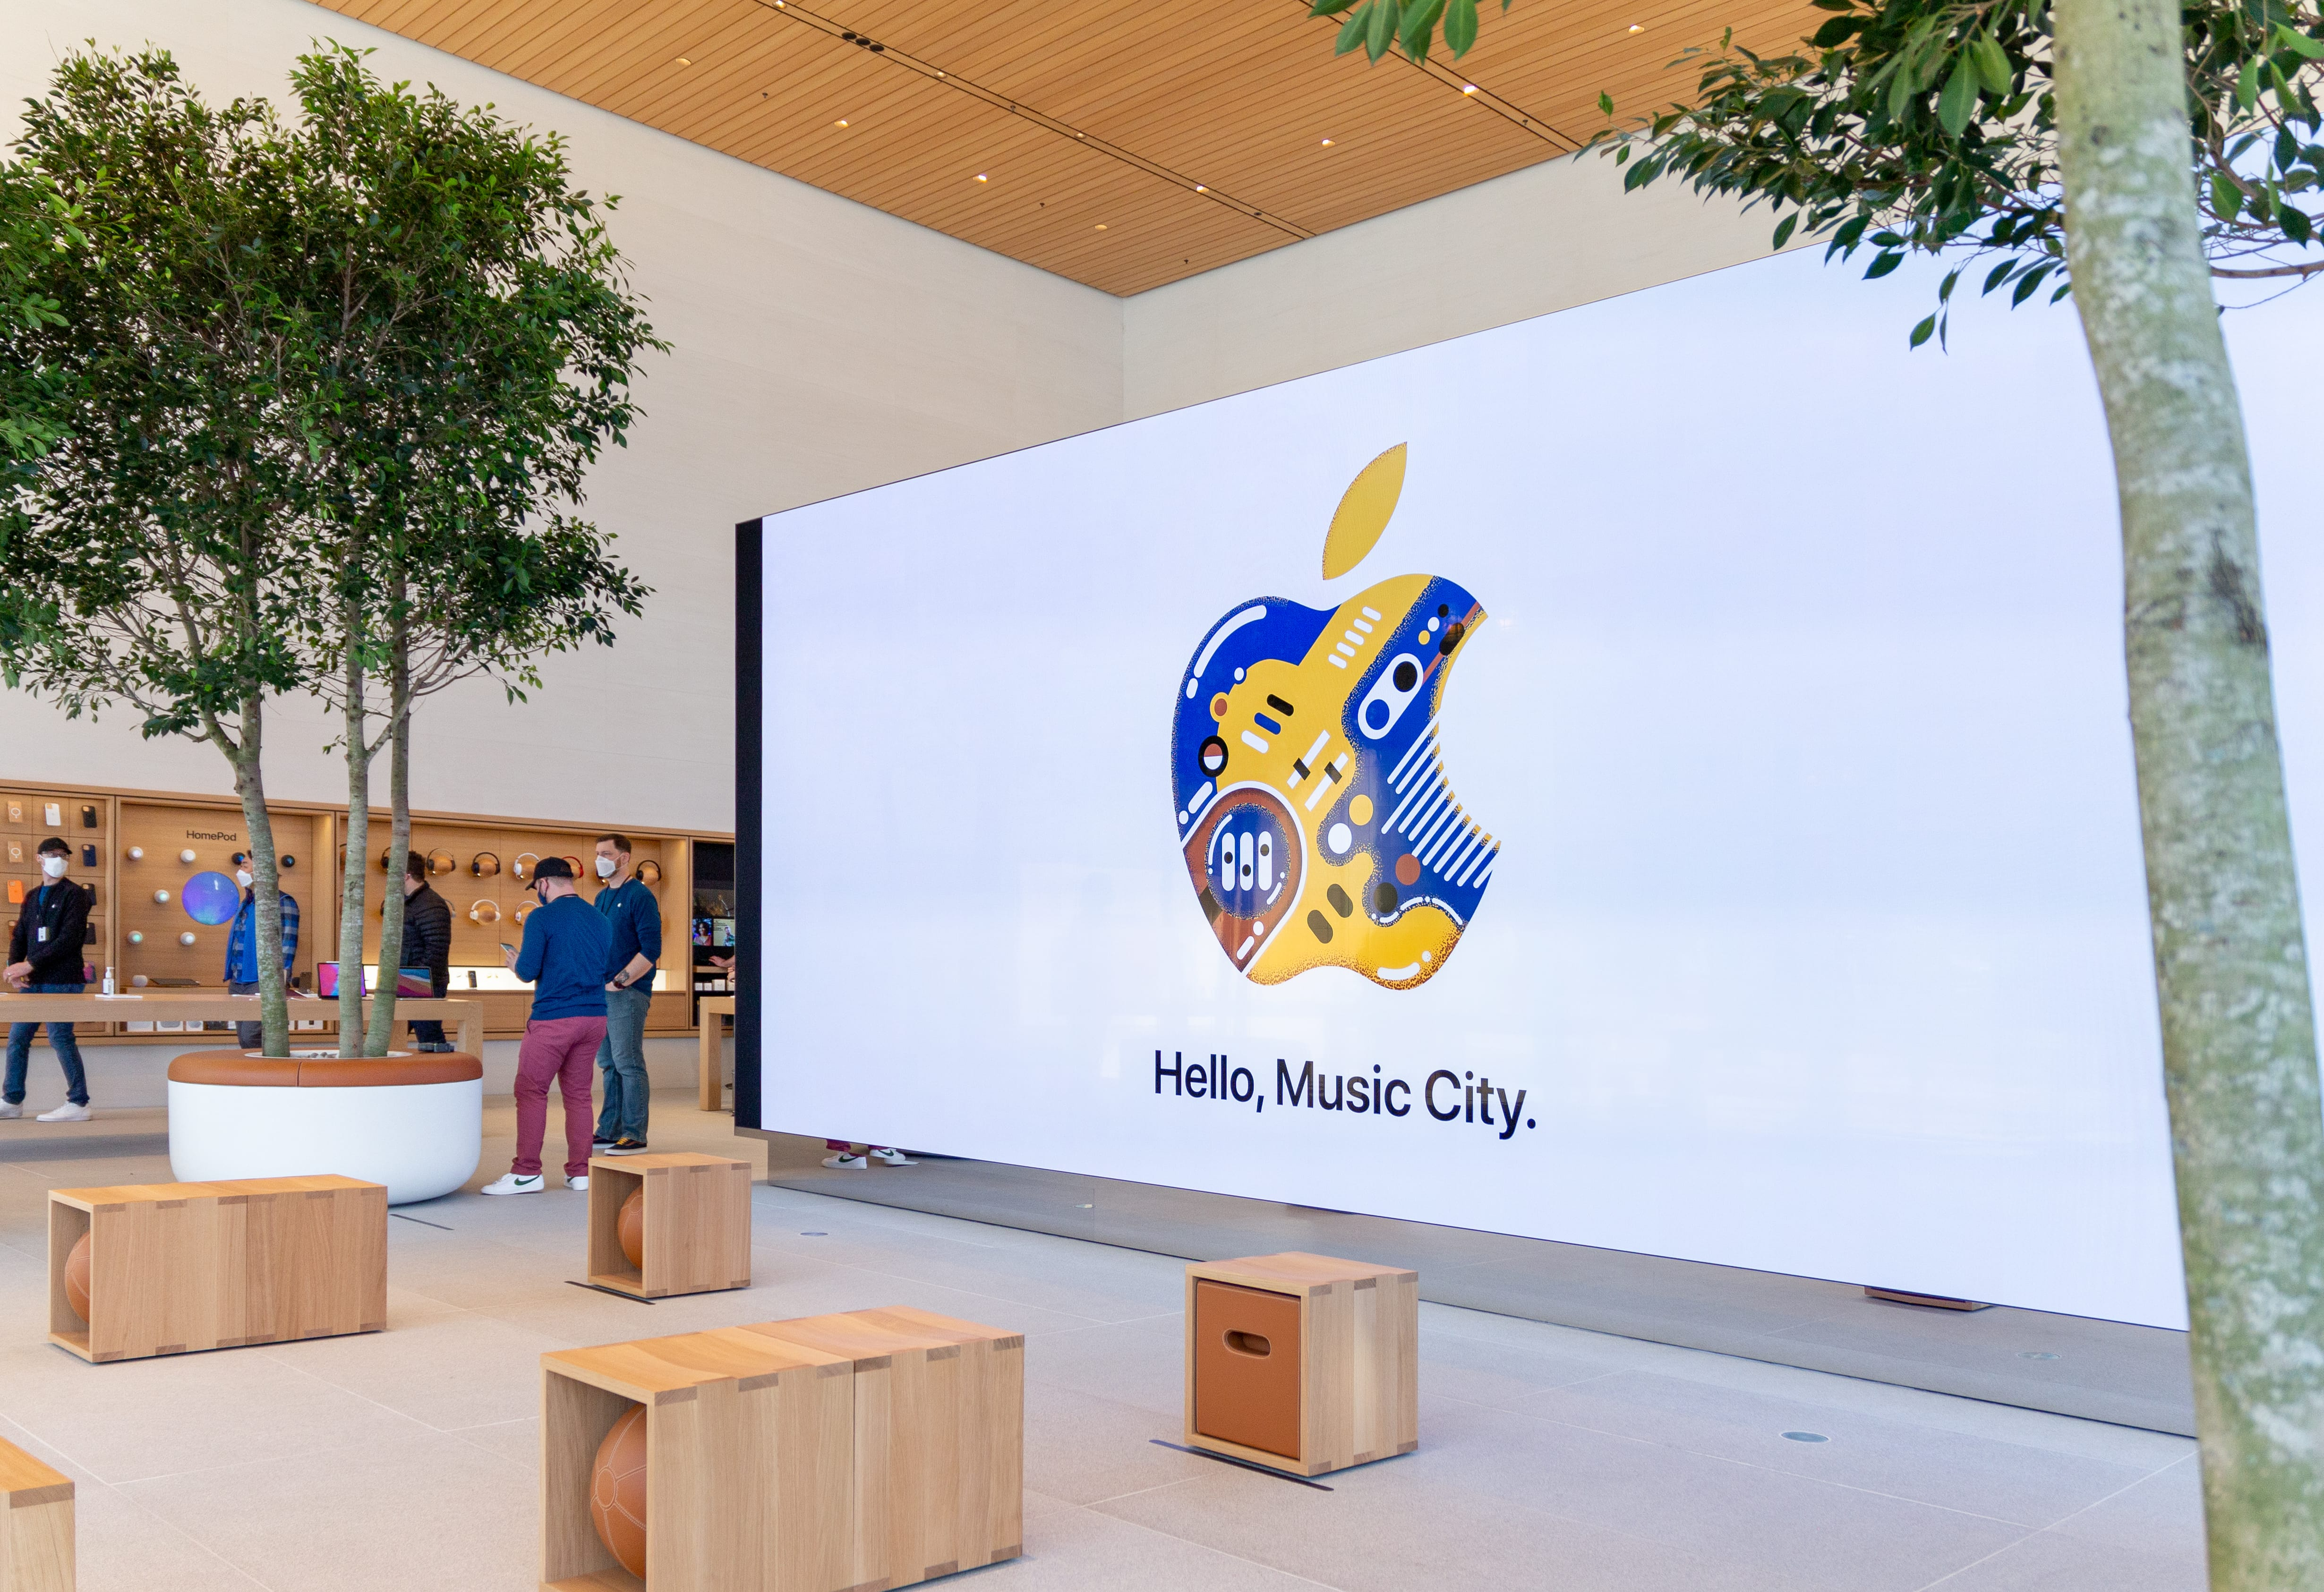 Video Wall and Forum